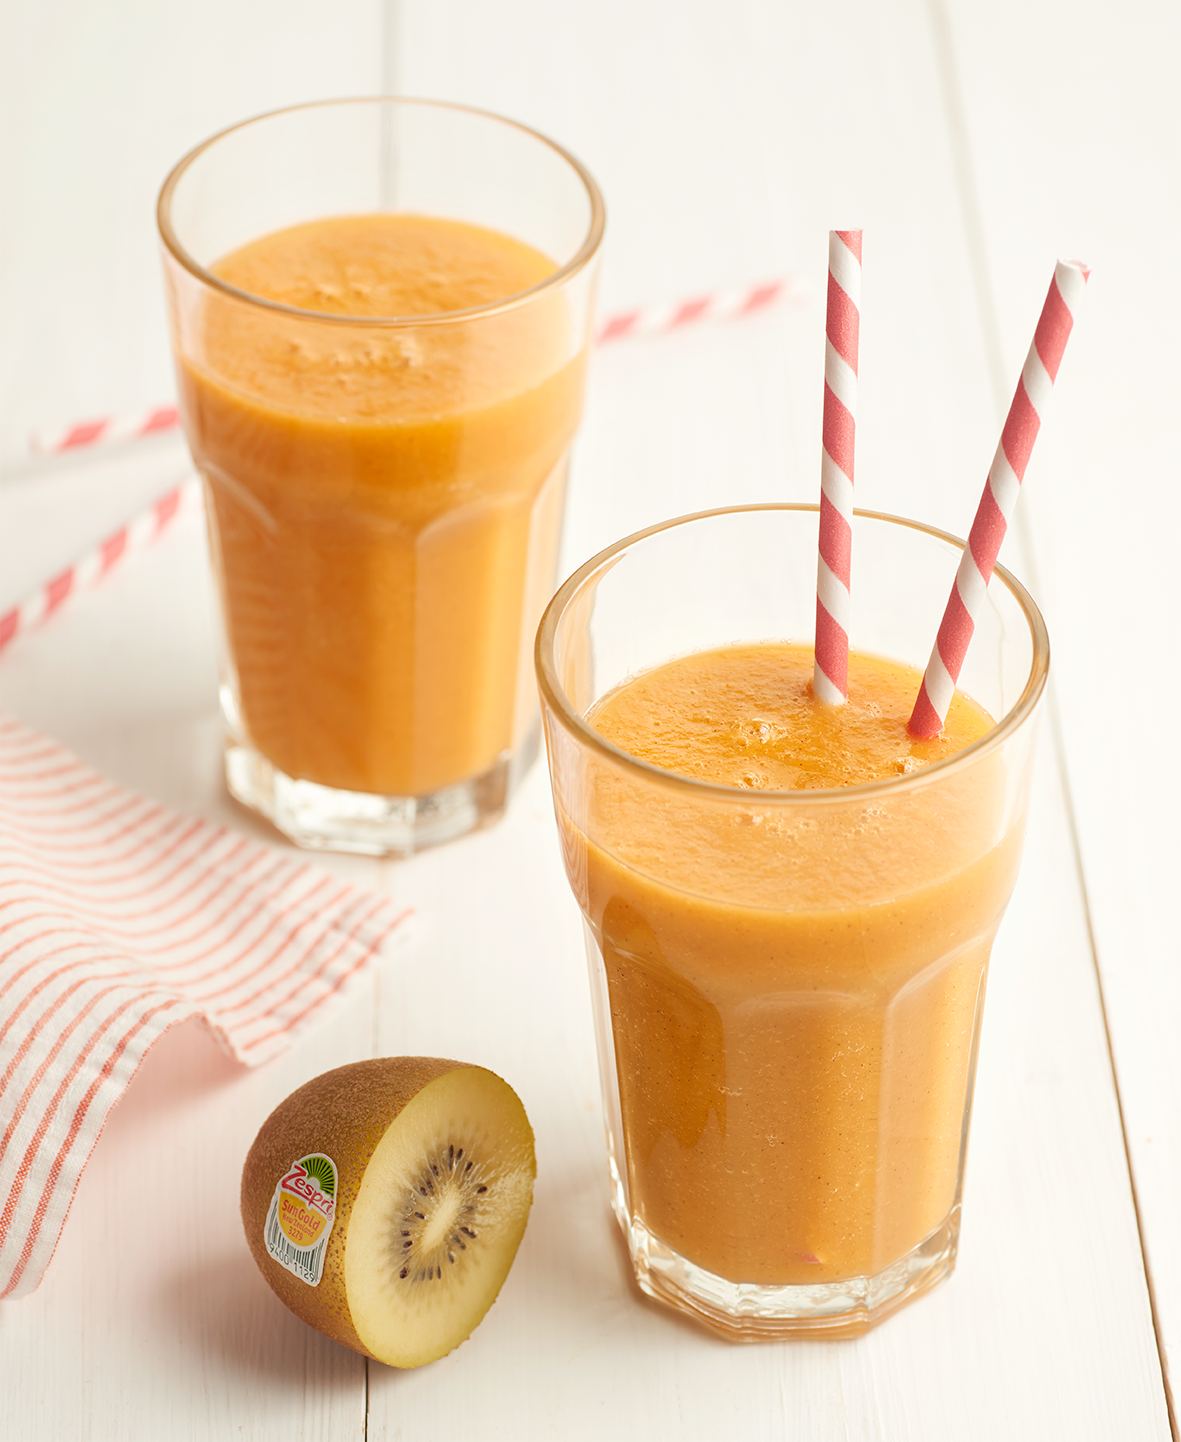 4 images 8 RECIPES 2 Carrot Zespri Sun Gold kiwifruit pineapple and mint smoothie high 1